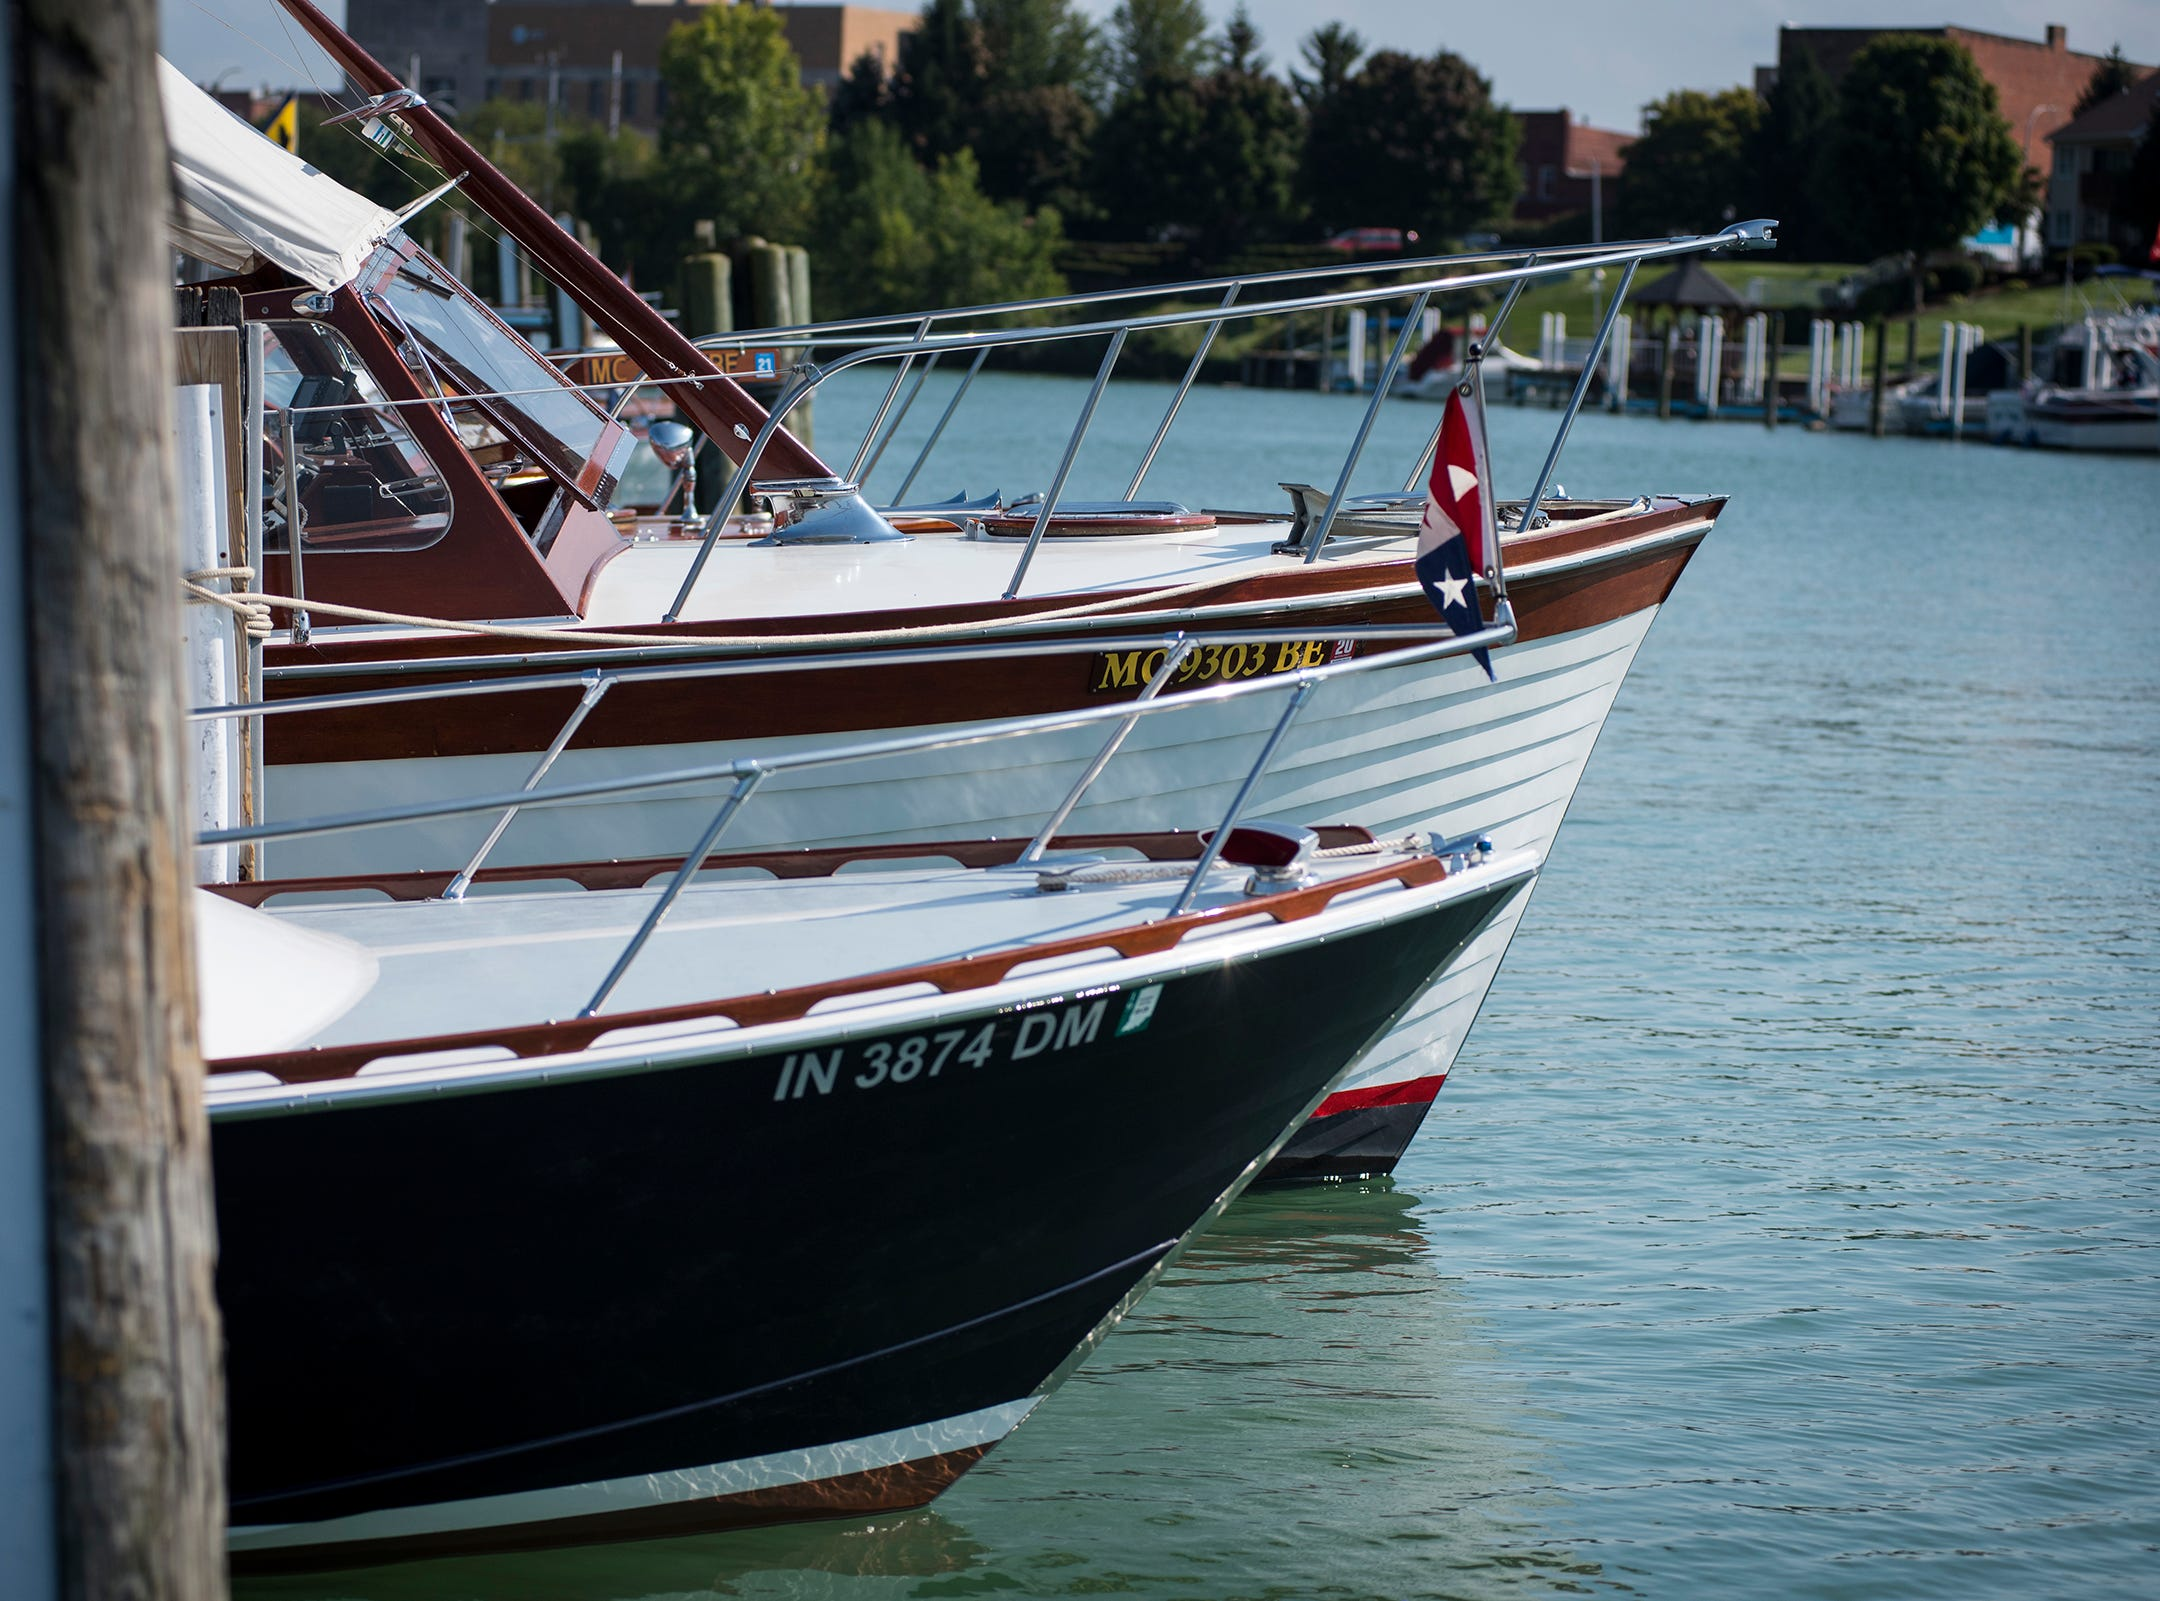 The Old Lady (back), a 1958 Chris Craft Sea Skiff, is docked next to Cracker Jack, a 1964 Chris Craft Cutlass Friday, Sept. 14, 2018, at River Street Marina during the 2018 ACBS International Boat Show.